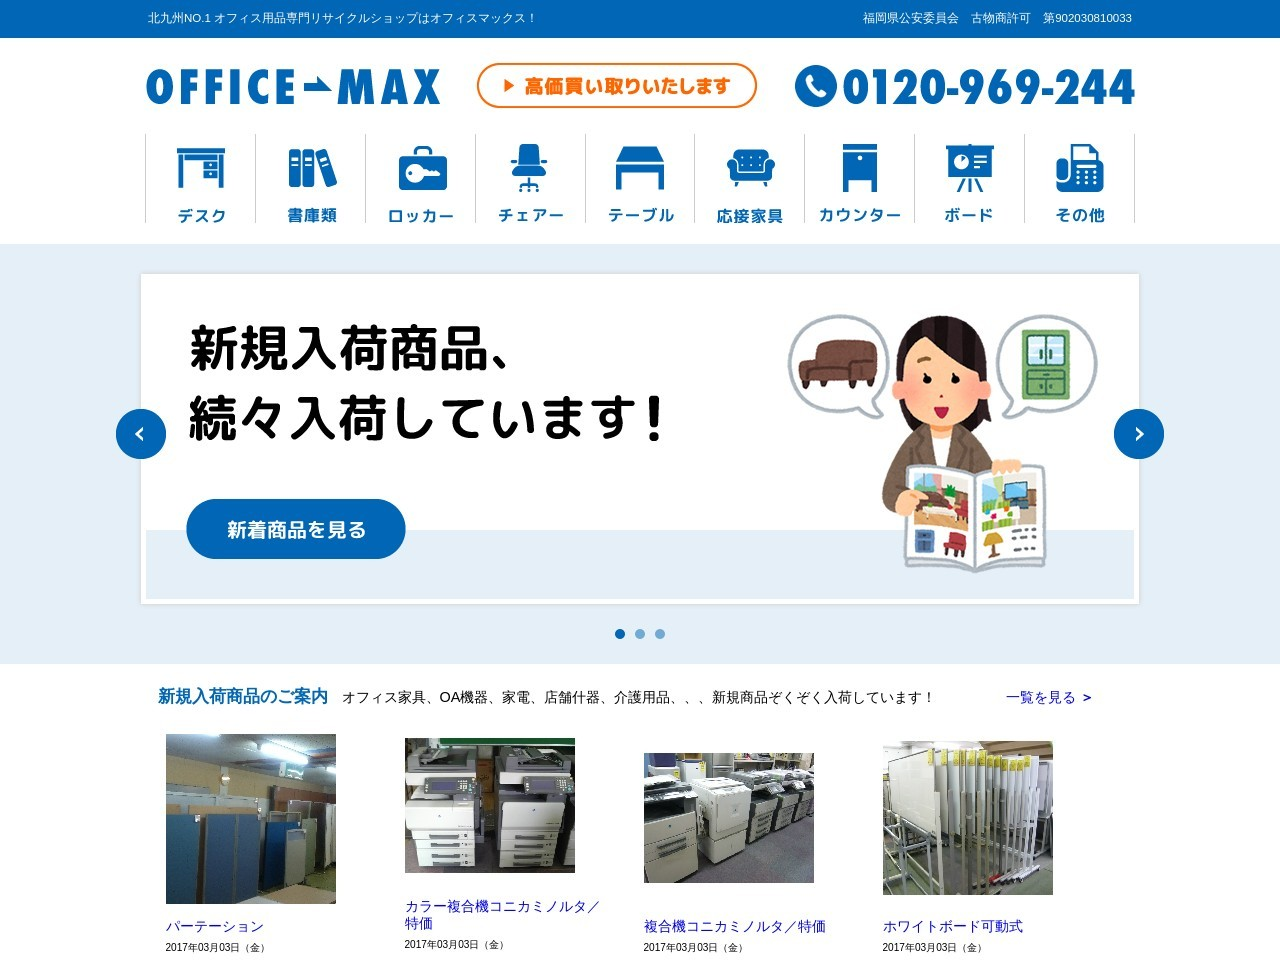 http://officemax.jp/%20http://openuser.auctions.yahoo.co.jp/jp/user/officemax_ito%20http://officemax.jp/info.html